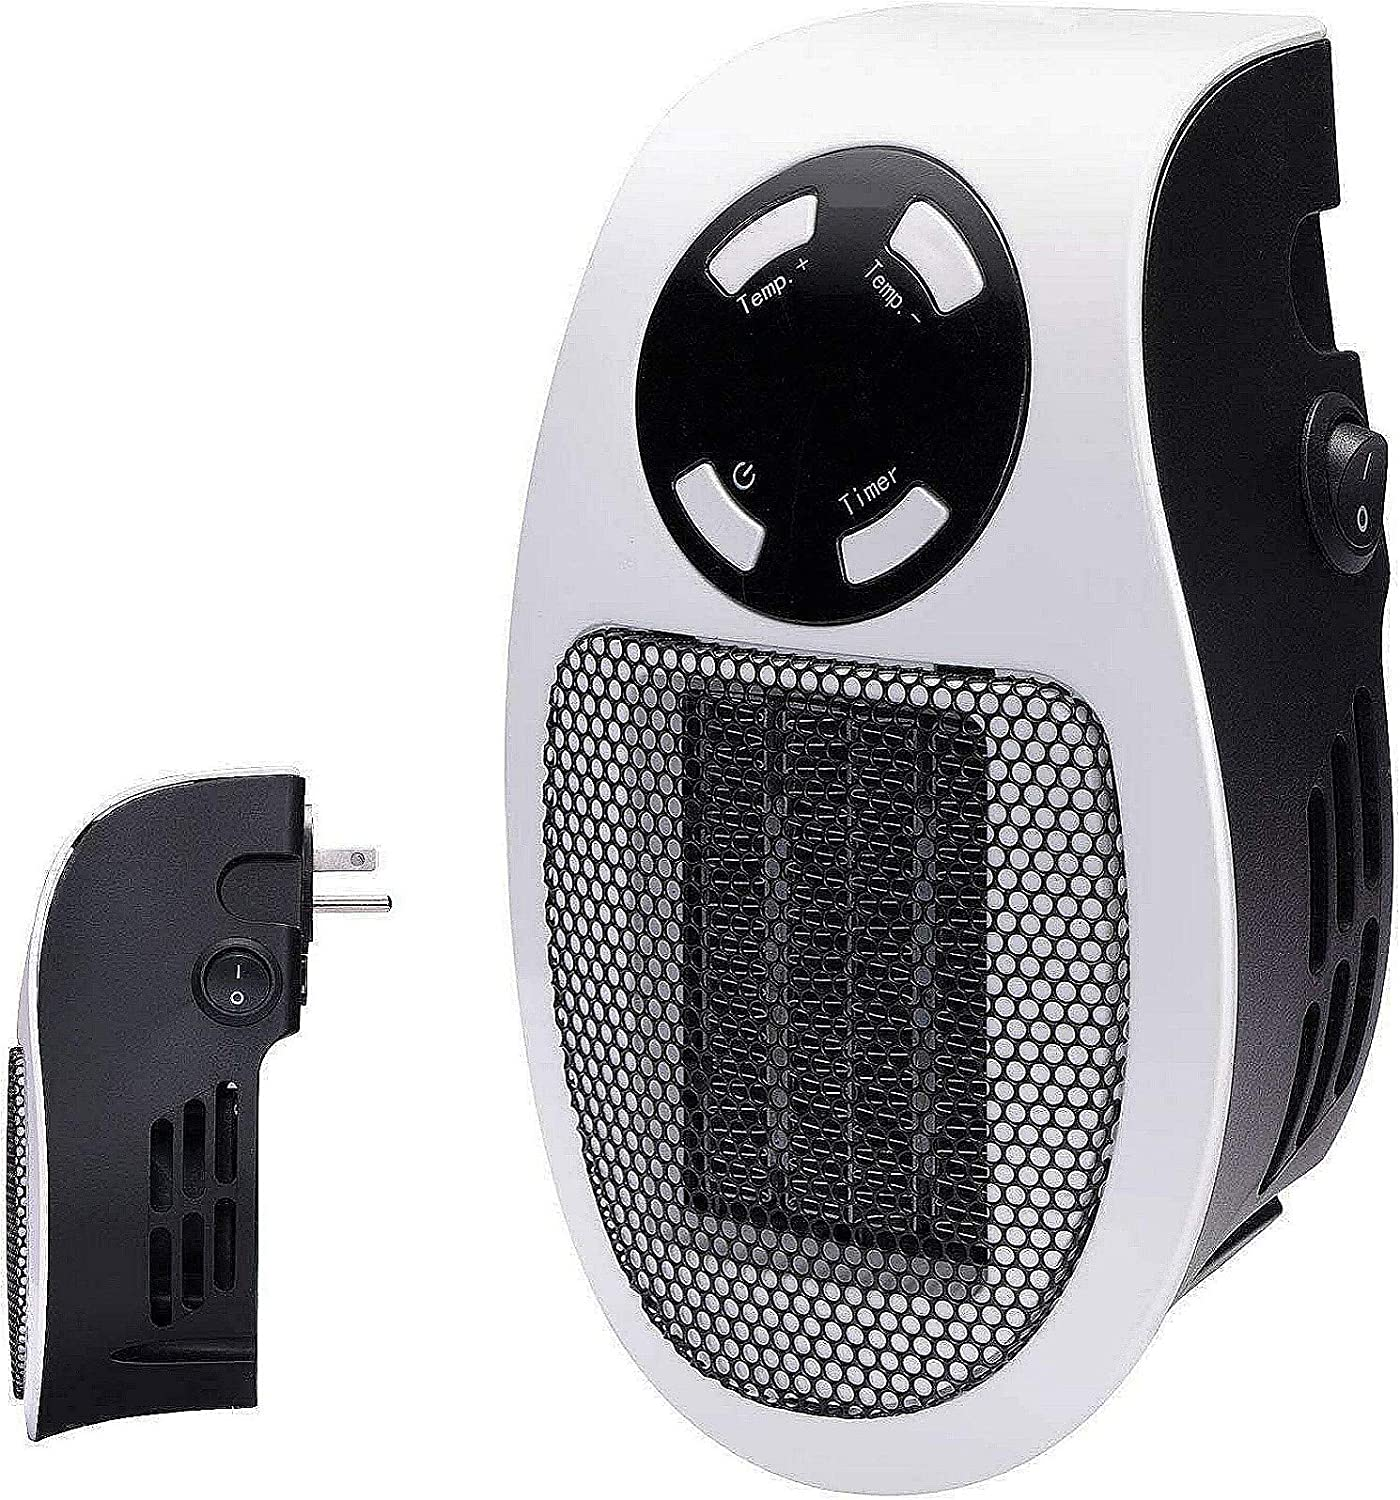 350W space heater for indoor use in homes and offices, wall outlet power space heater visible on TV, with adjustable thermostat, timer and LED display